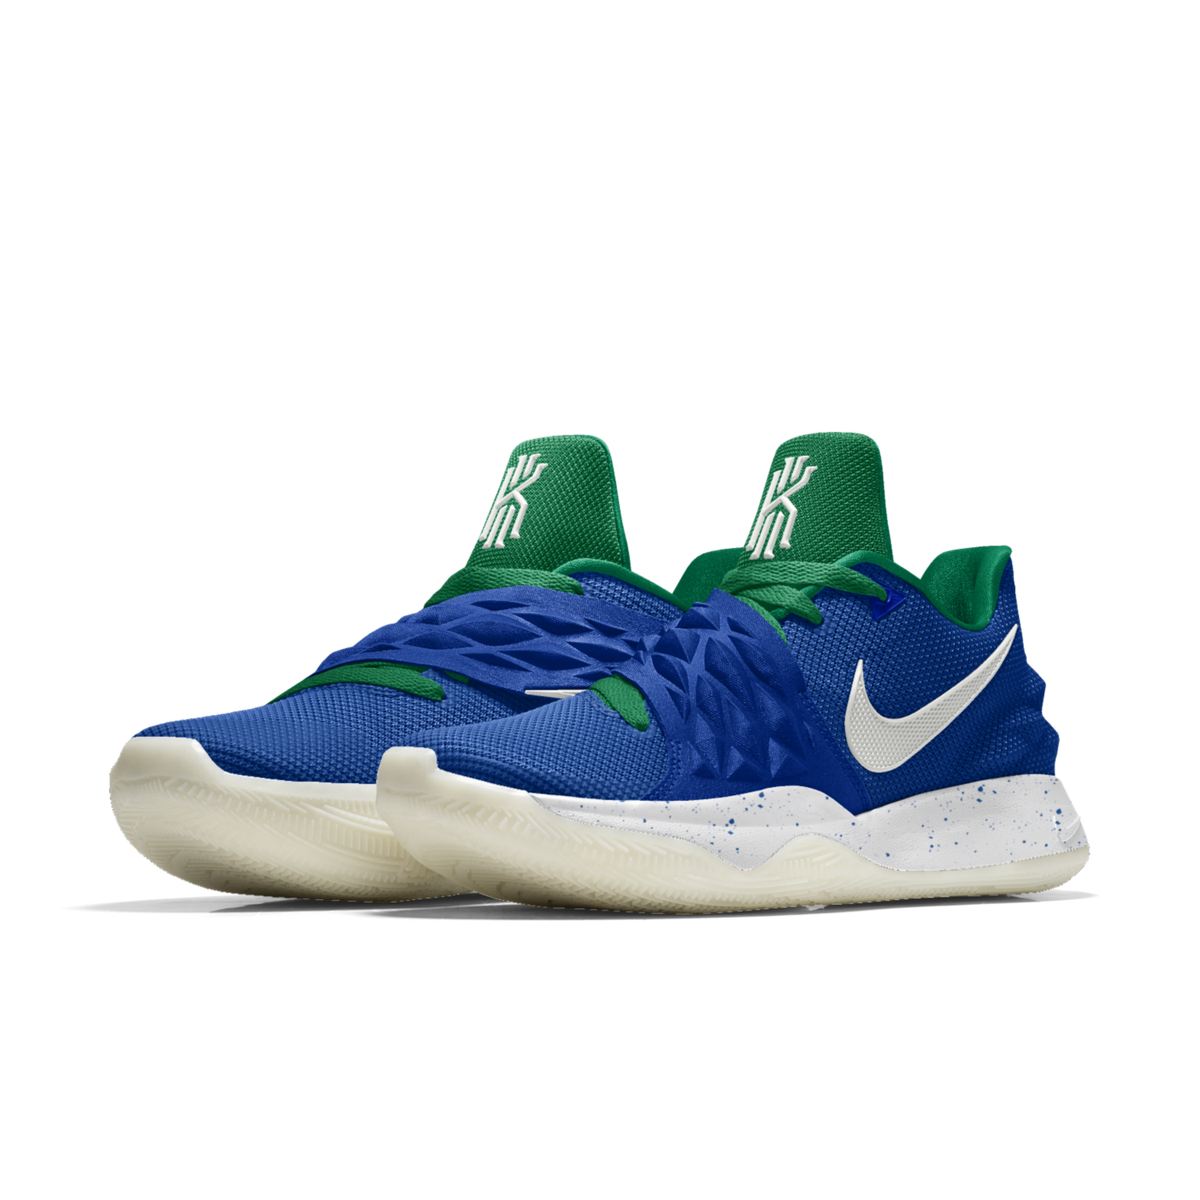 """ddc264ace22d Kyrie Low """"Retro Glow"""" for  130 Nike"""